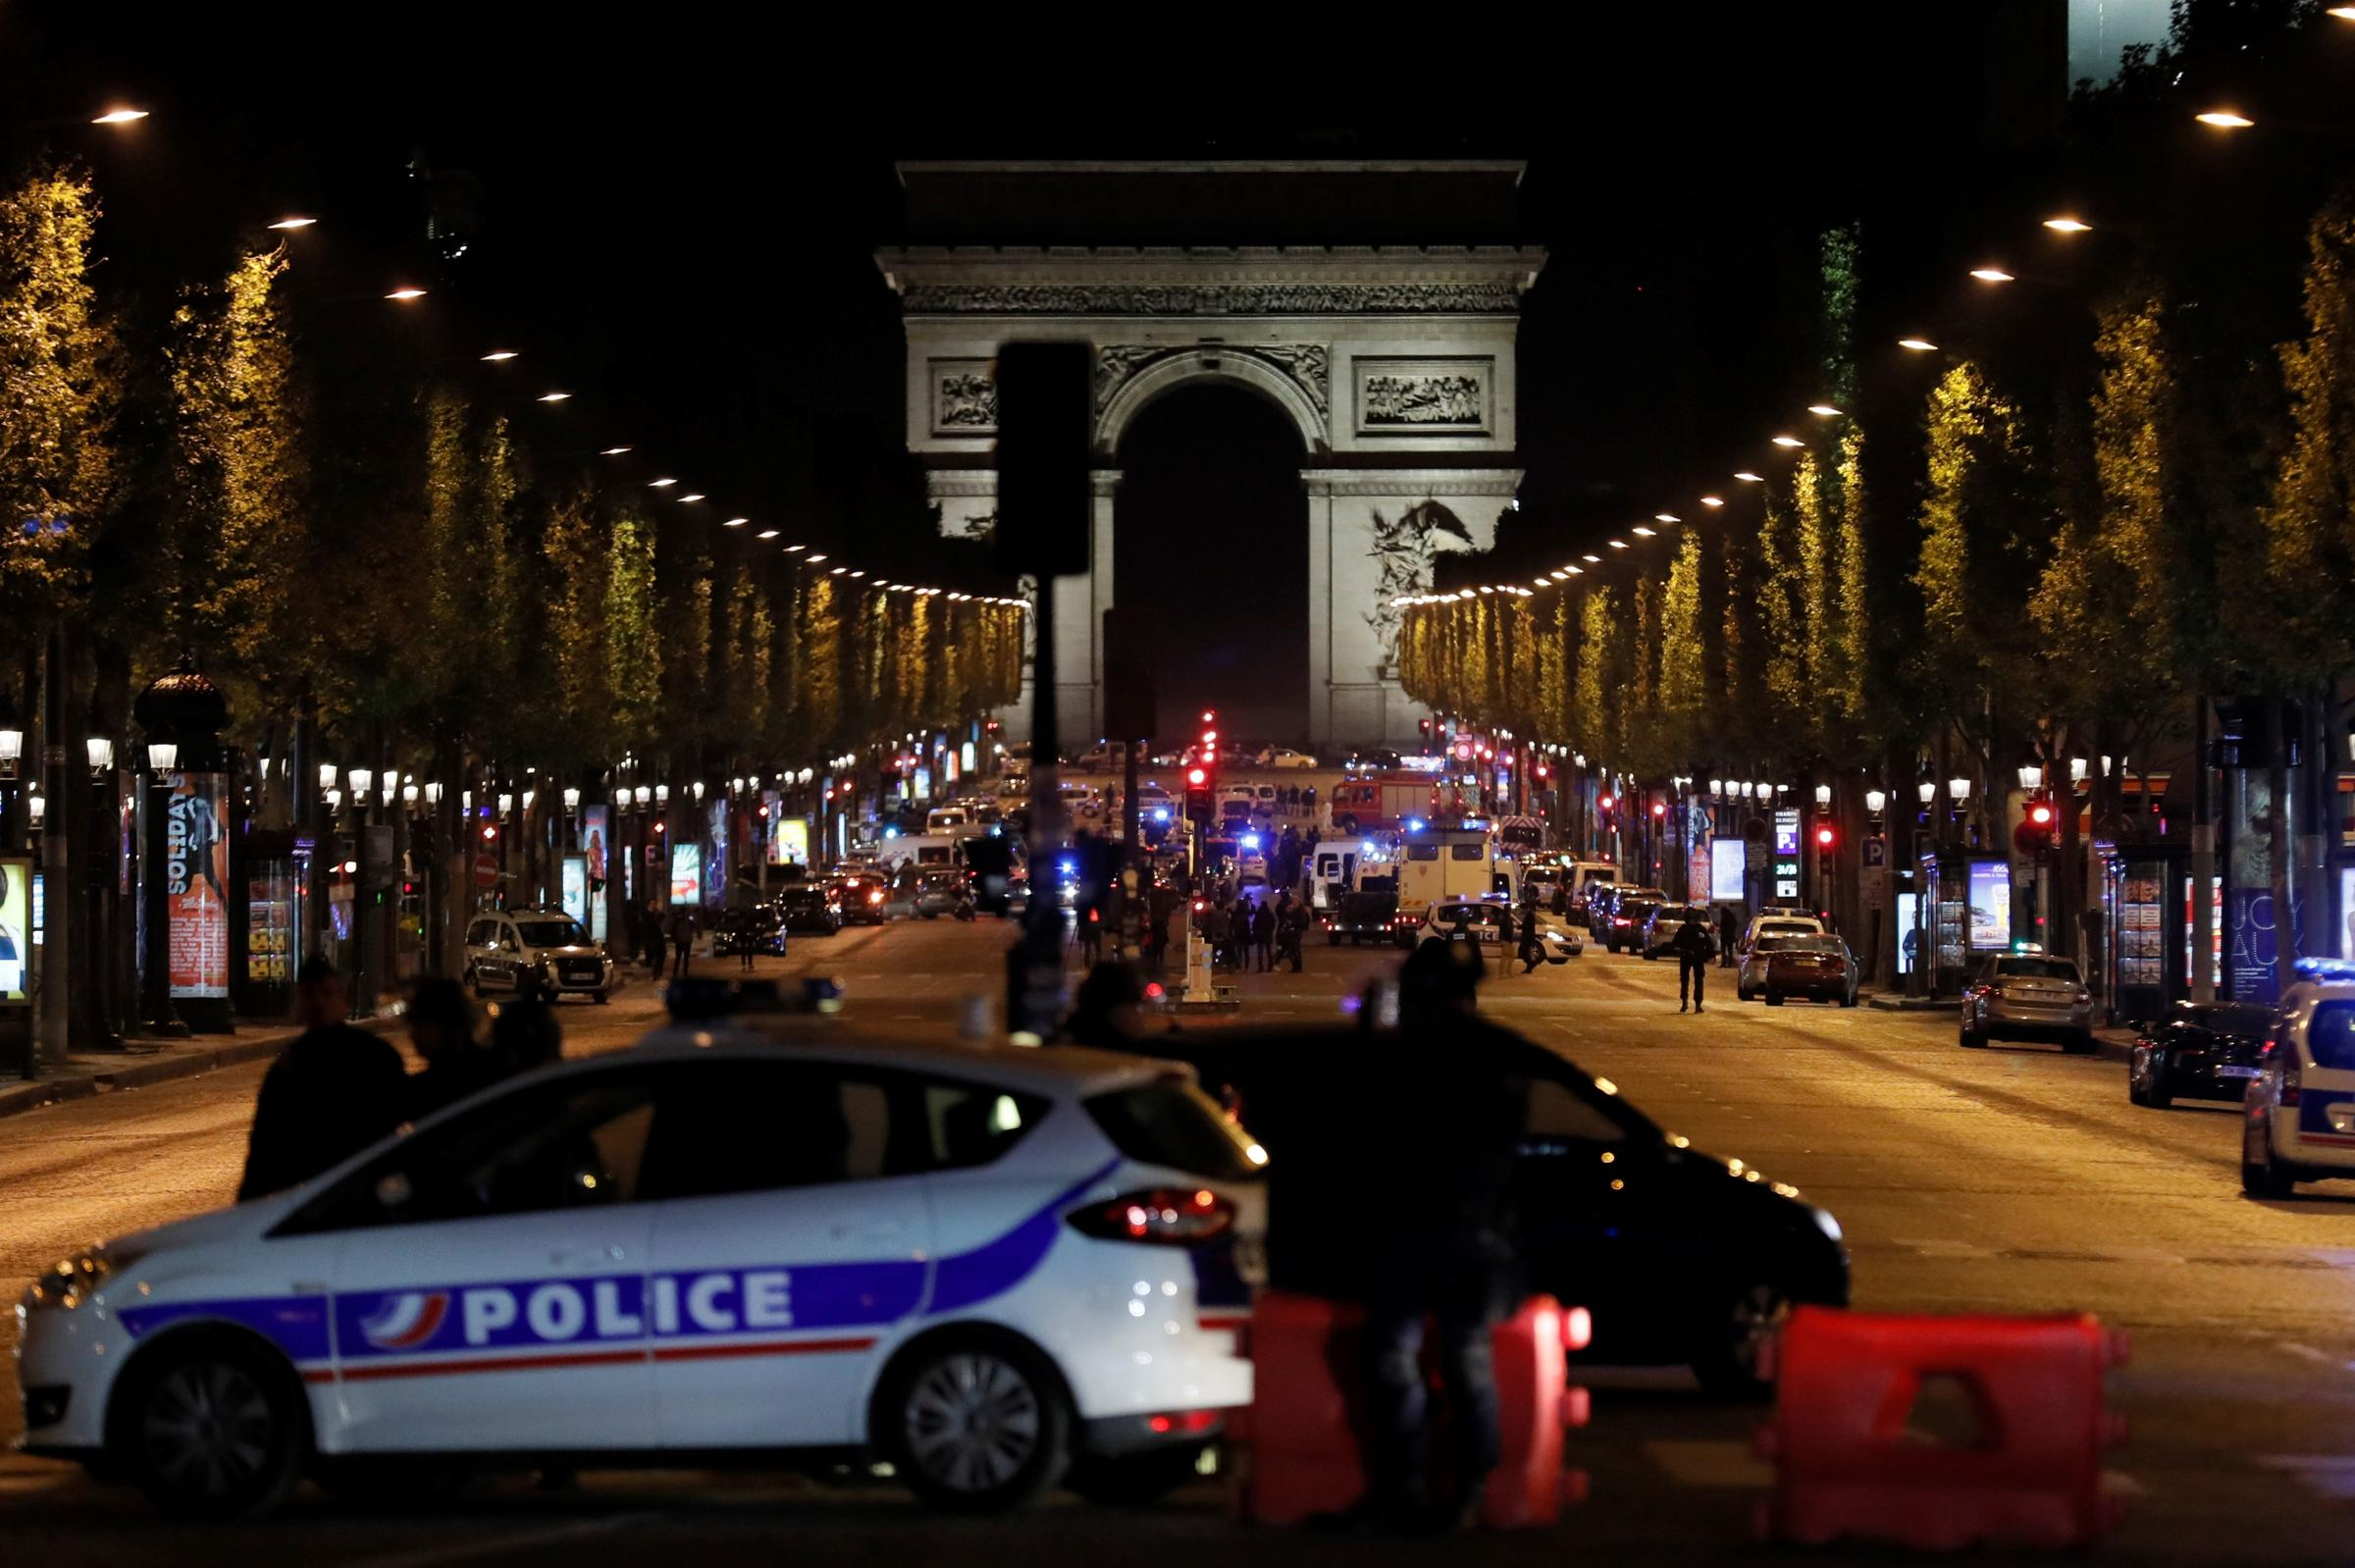 One policeman killed, two injured in Paris shooting